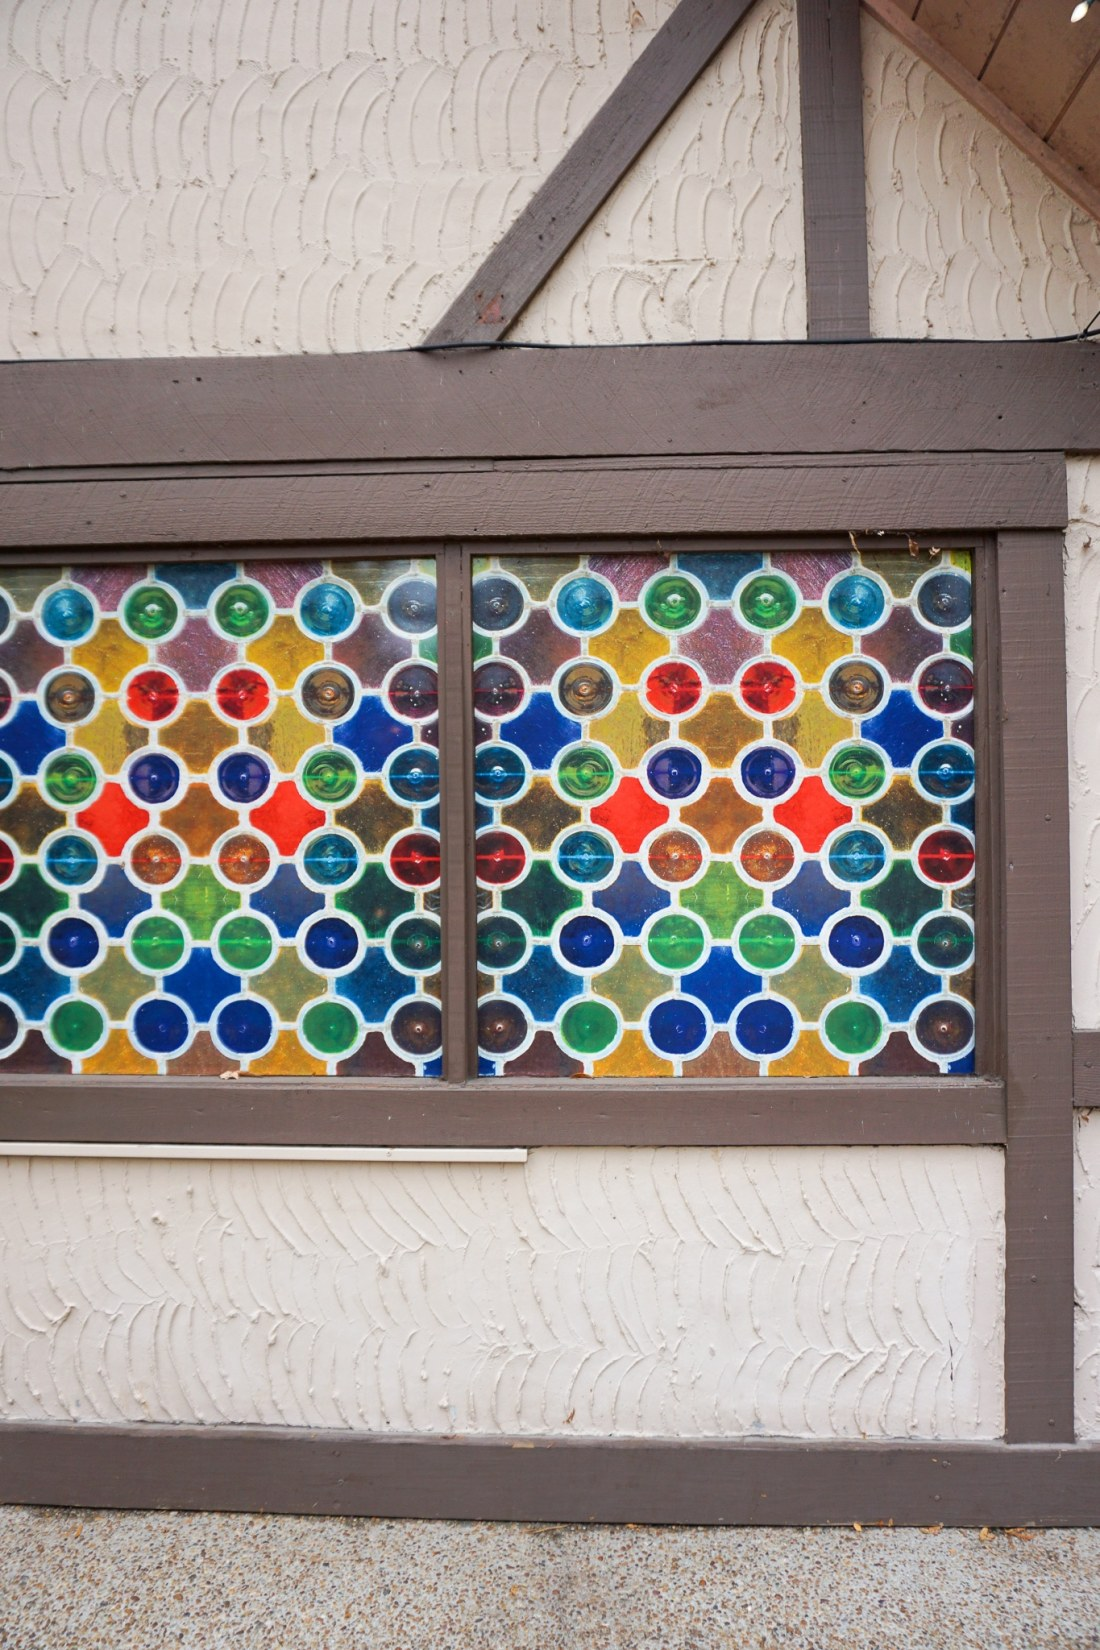 Stain Glass Wall 15 Instagram Worthy Walls Christmas Town Busch Gardens. Instagram Worthy Walls and Locations around Busch Gardens Christmas Town in Williamsburg Virginia.